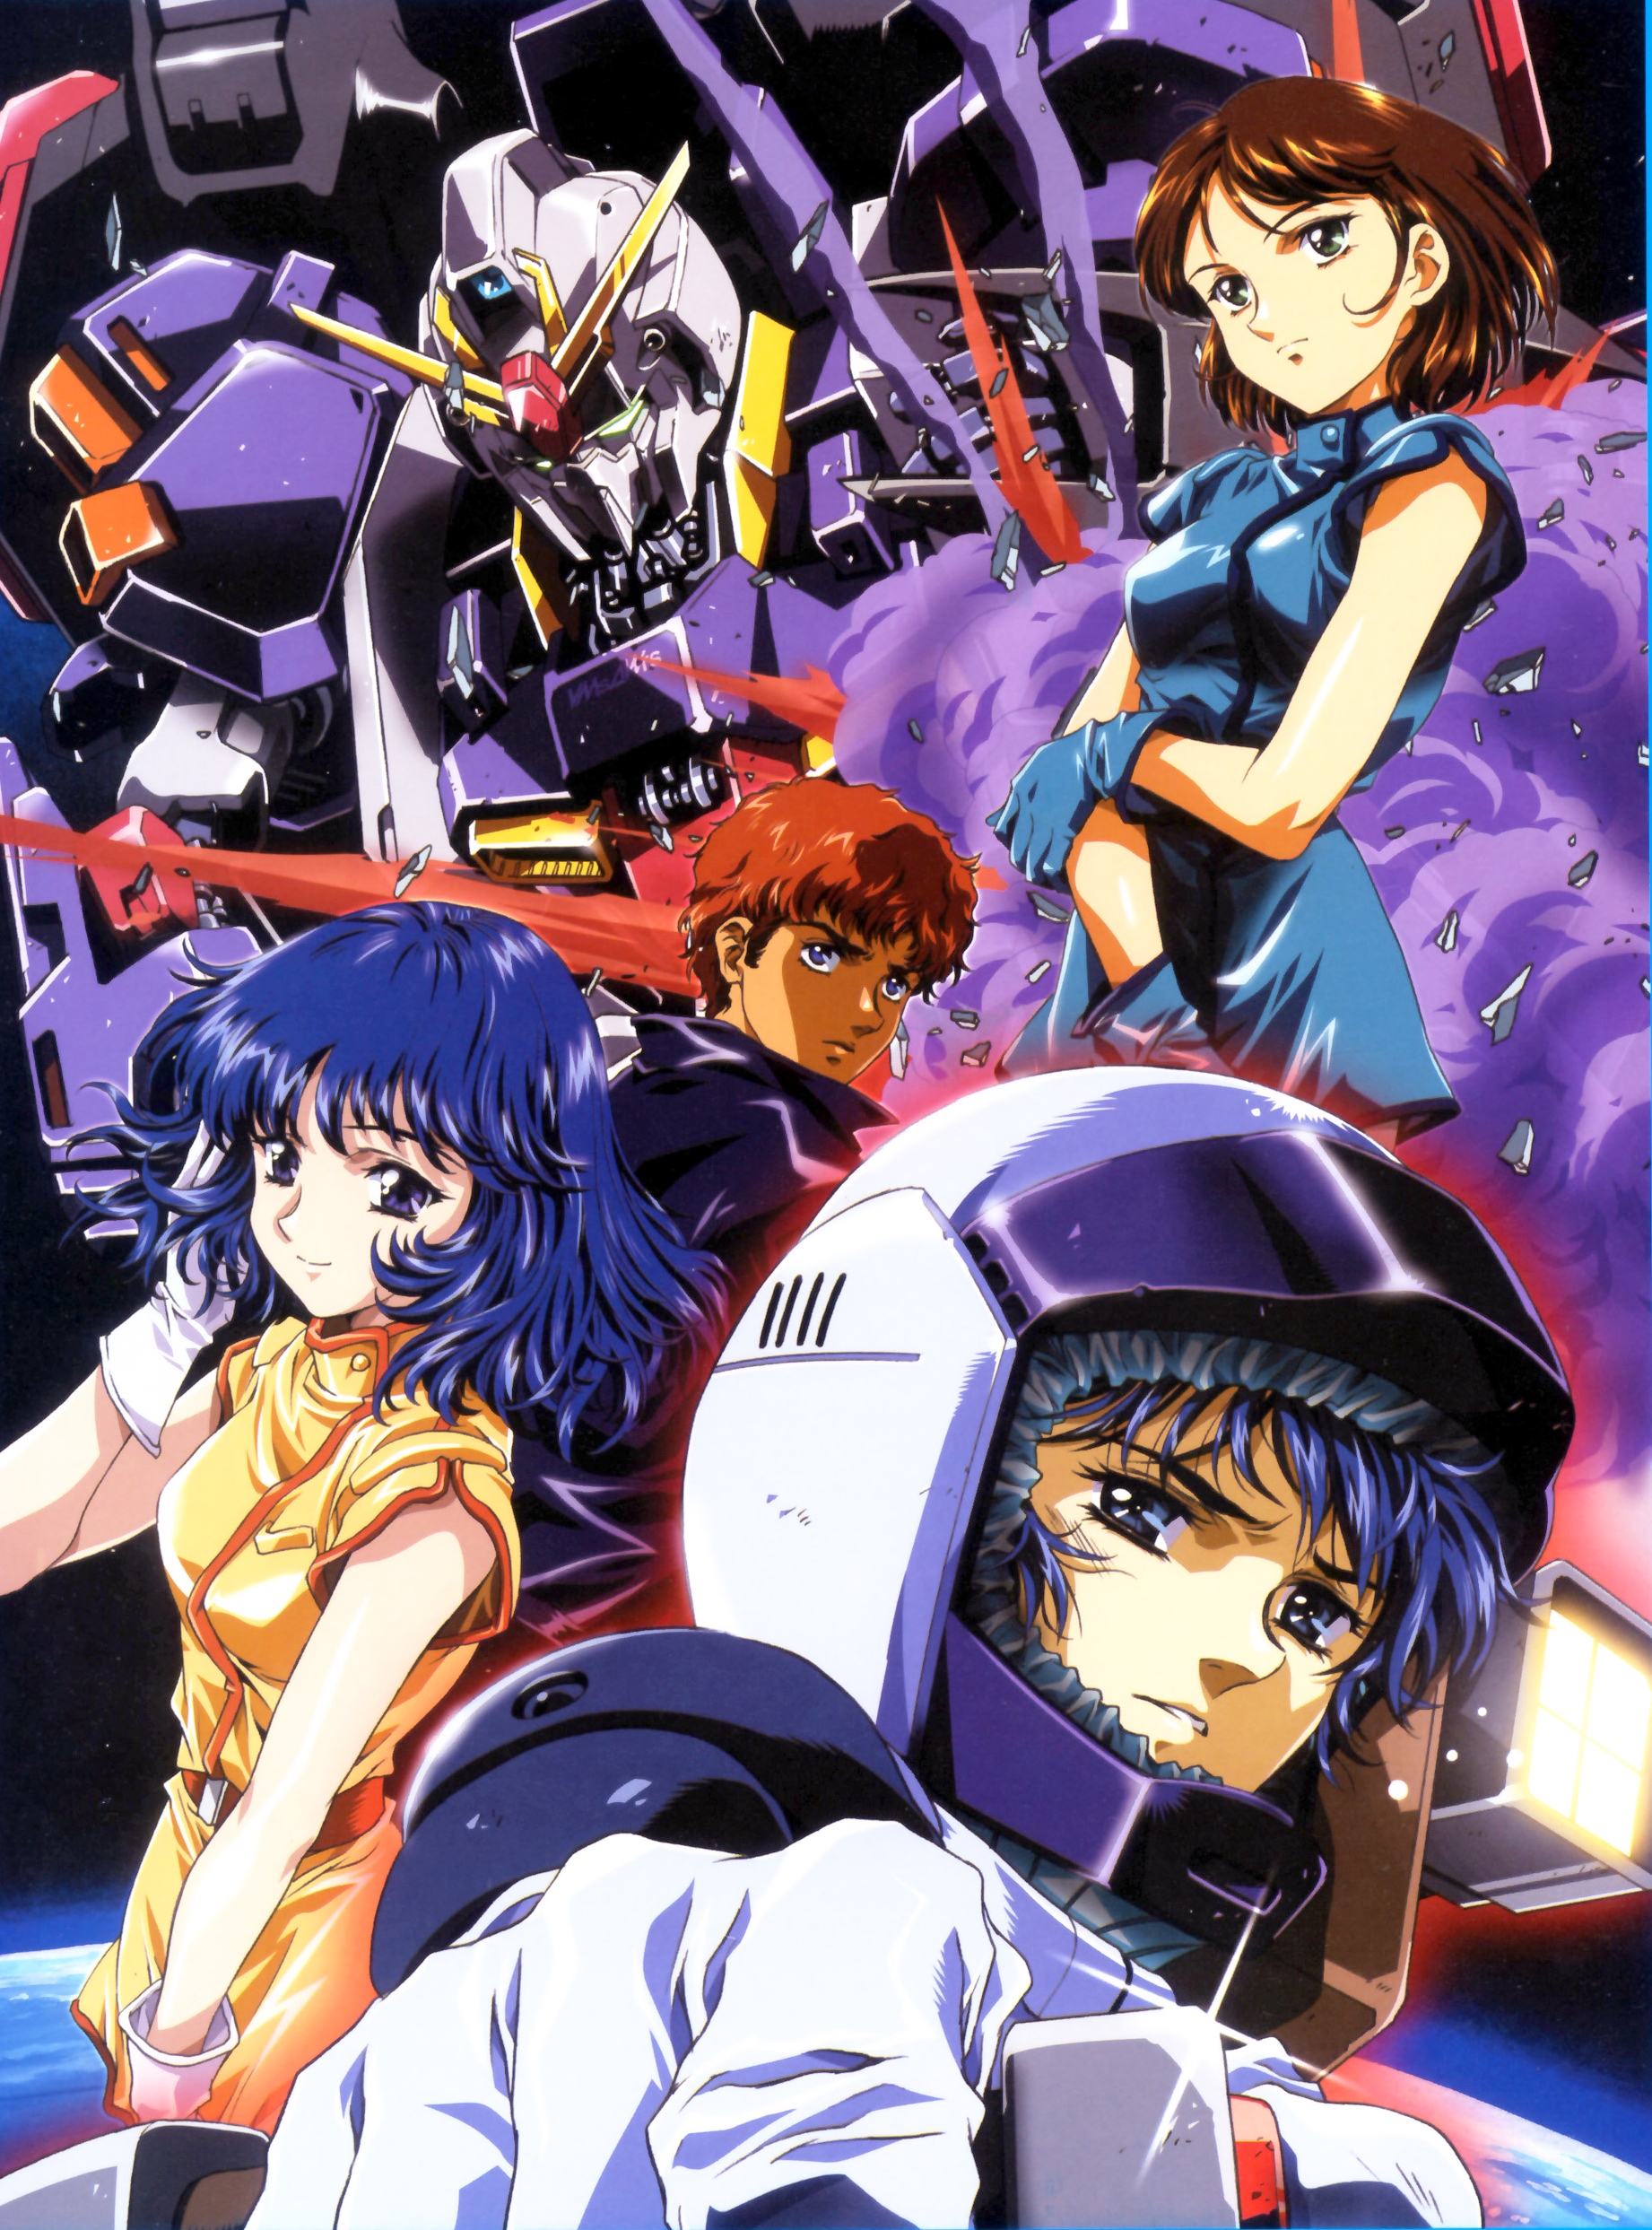 fa yuiry Fa is a character from mobile suit zeta gundam she is the childhood friend of kamille bidan and occasionally pilots the methuss.